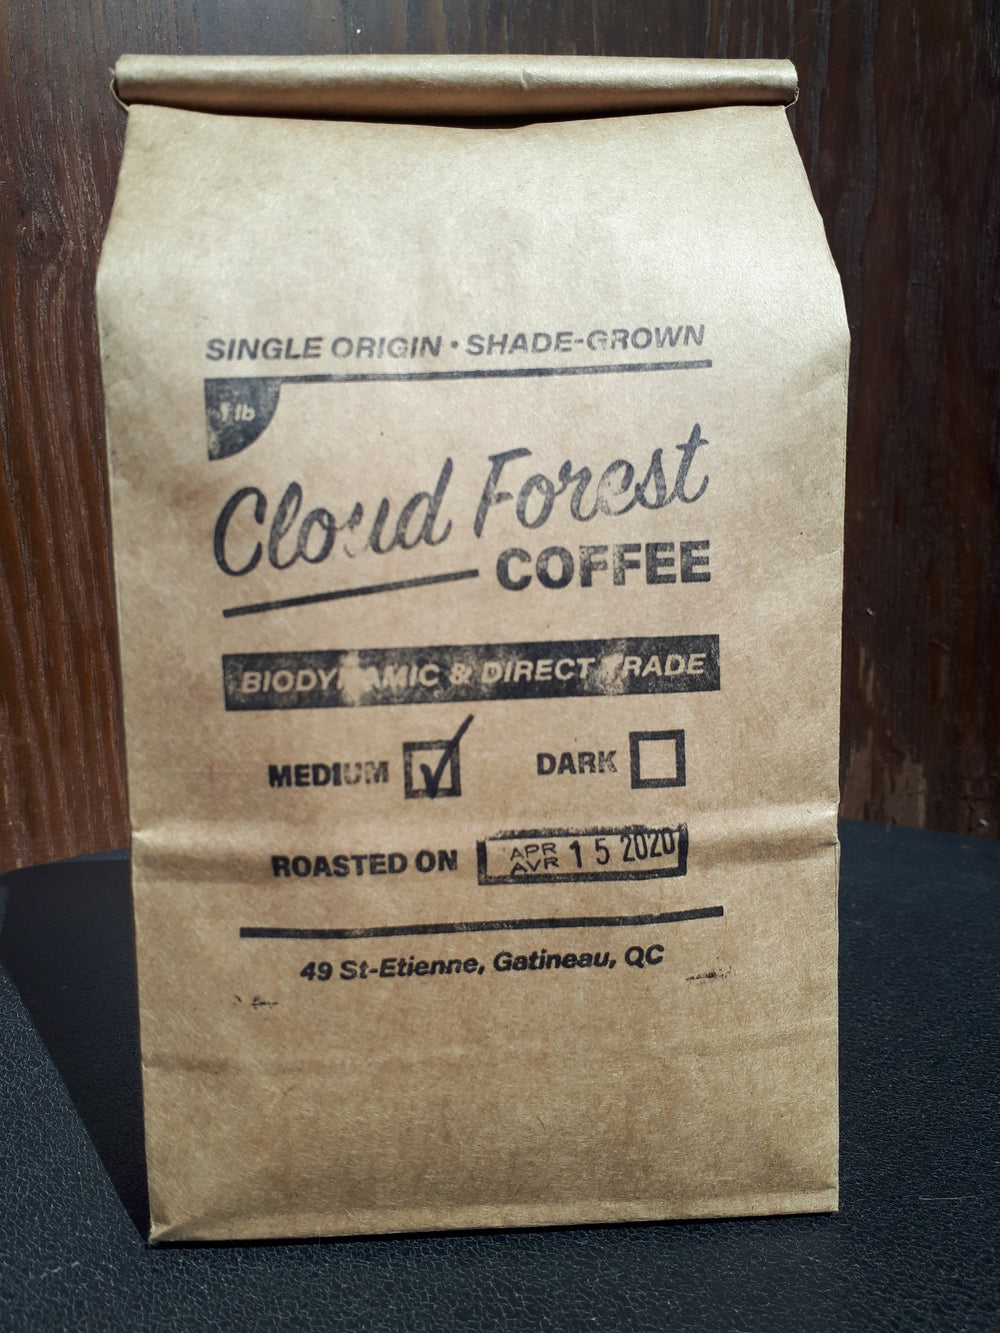 Cloudforest Coffee - Medium Roast